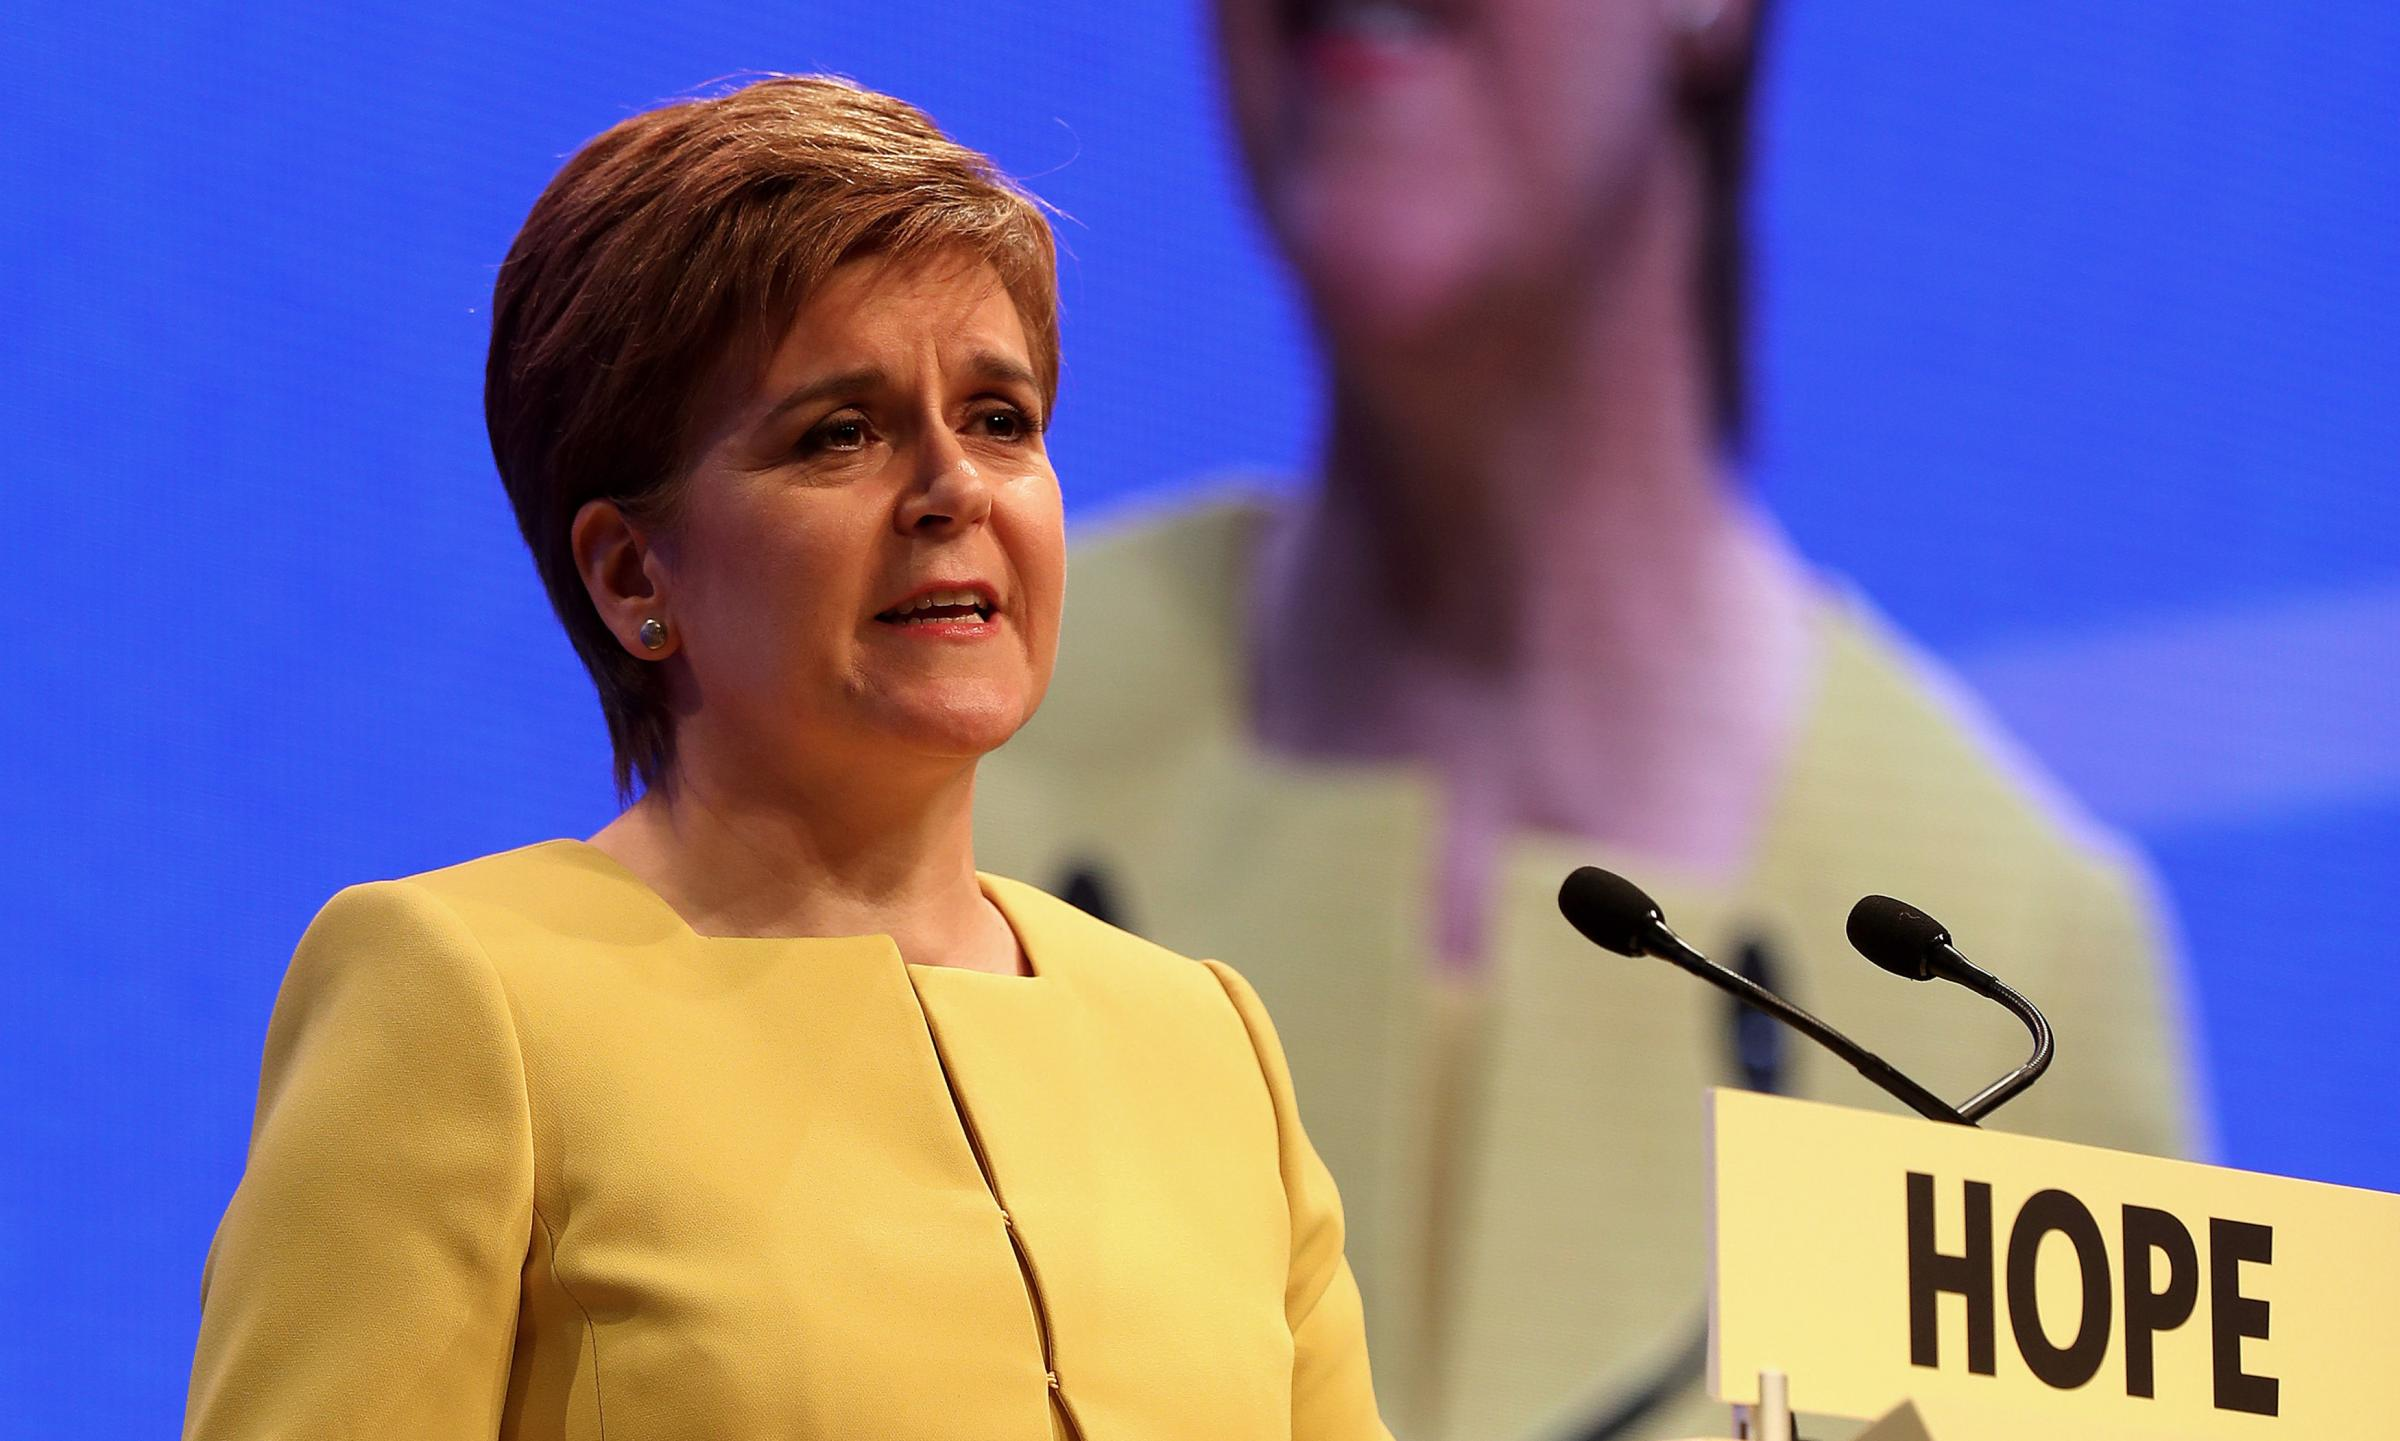 Nicola Sturgeon told the conference she had been influenced by talking to young campaigners